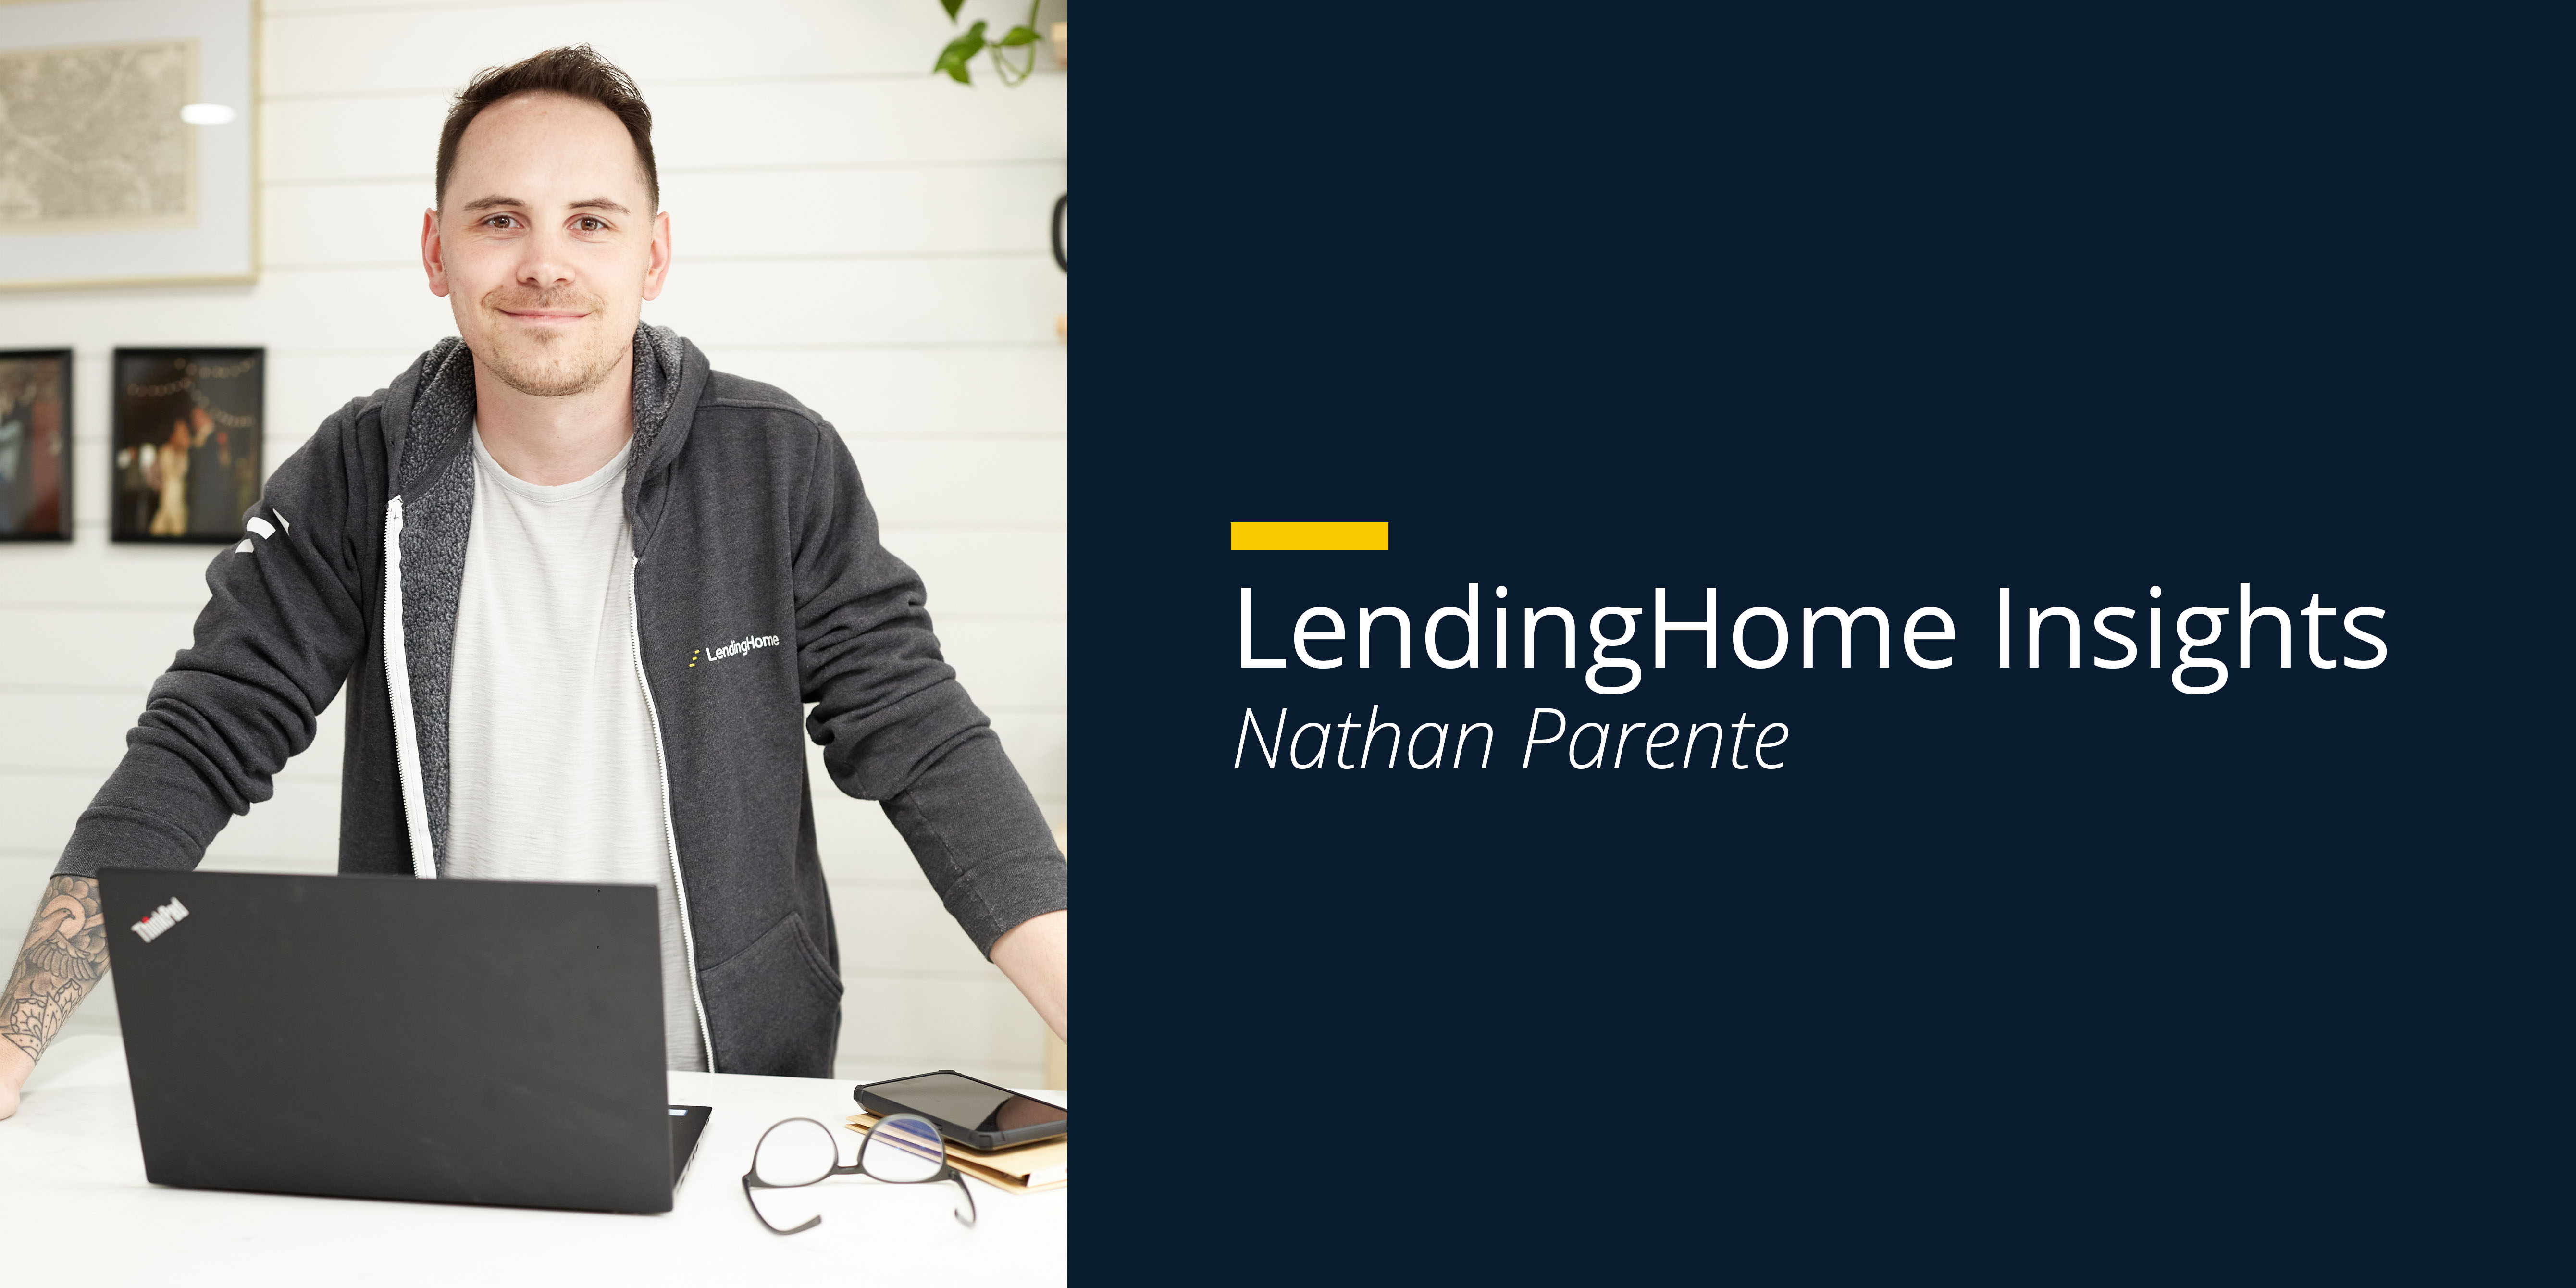 How I Knew LendingHome Offered a Top Tier Service—and Why It Made Me Want to Join the Team